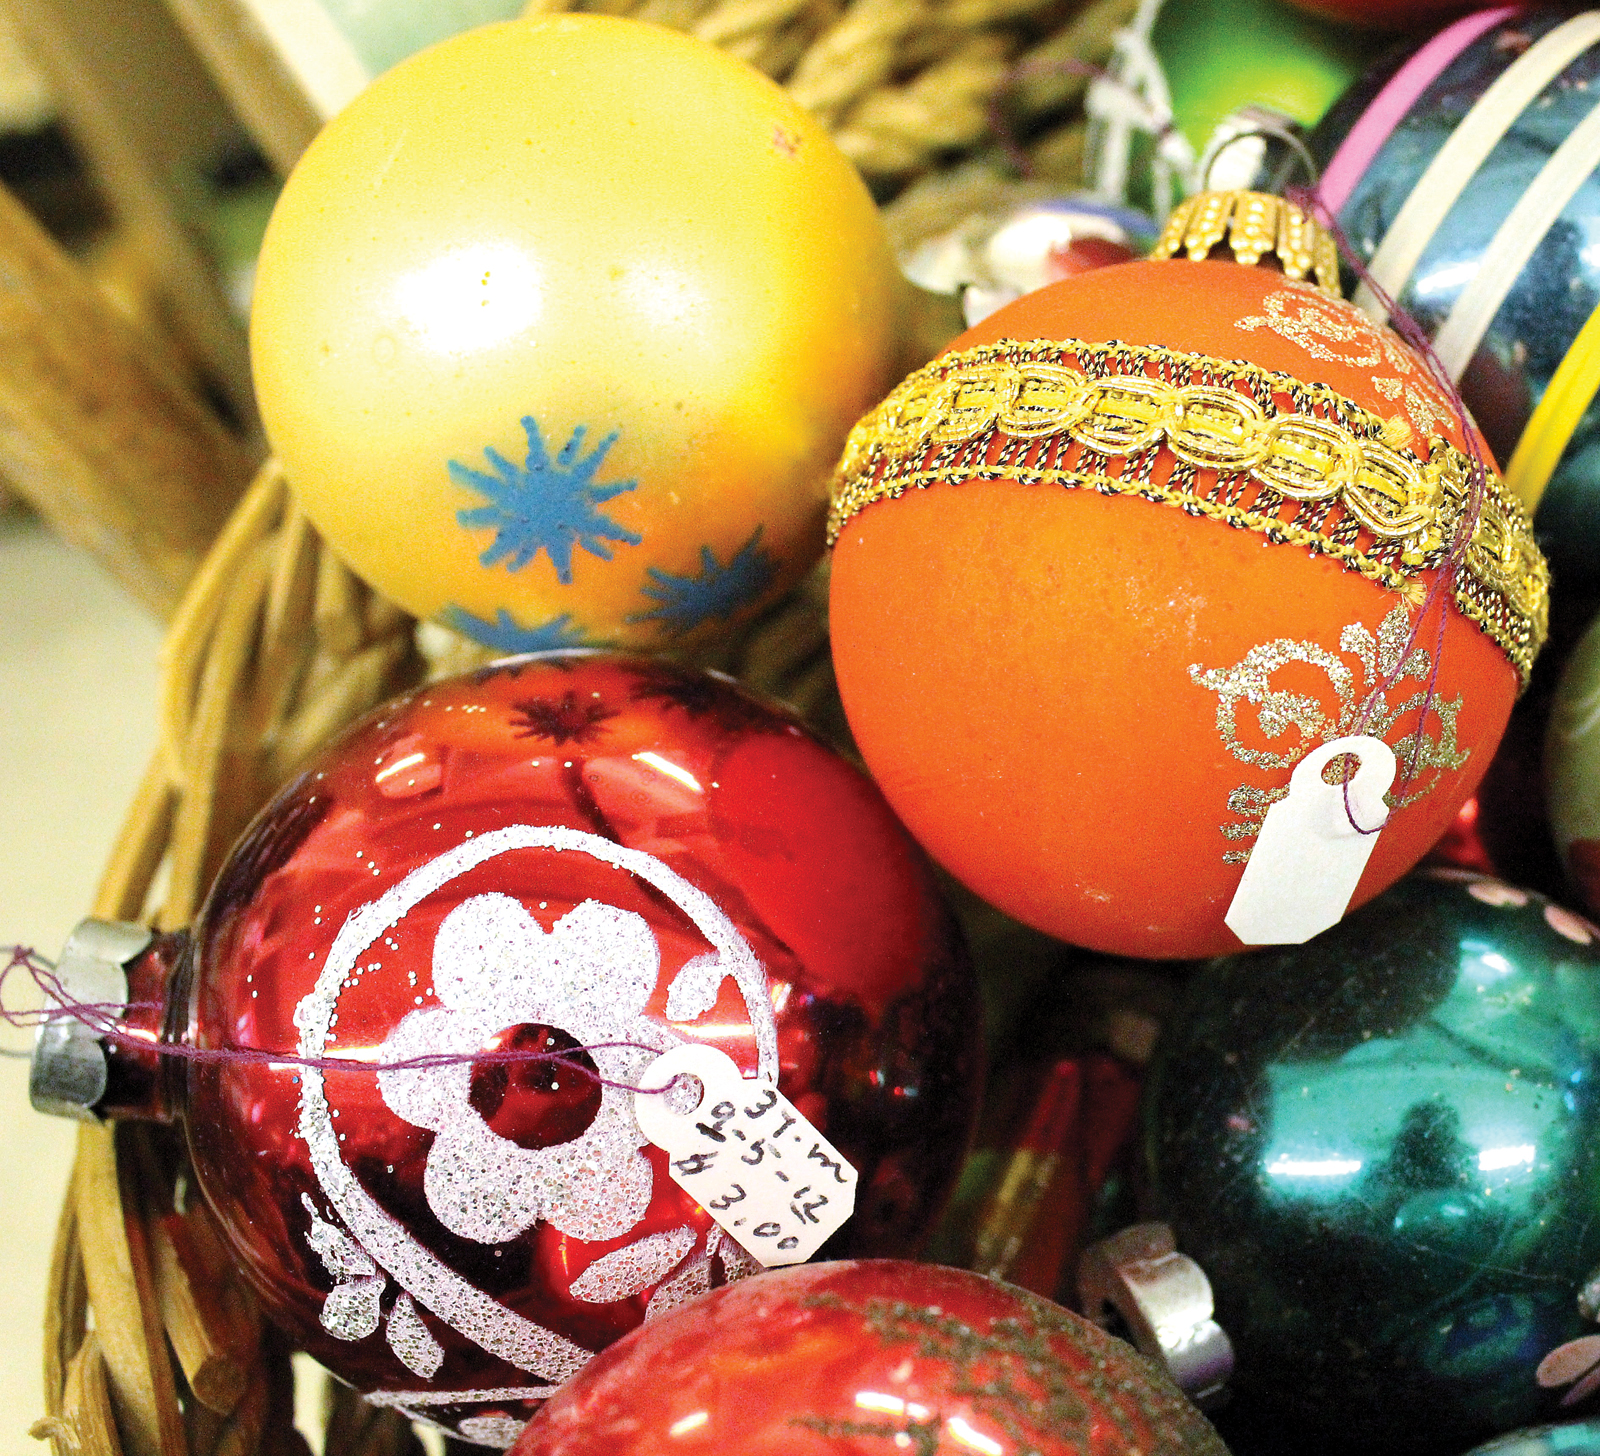 Old-fashioned Christmas bulbs and decorations | News, Sports, Jobs ...